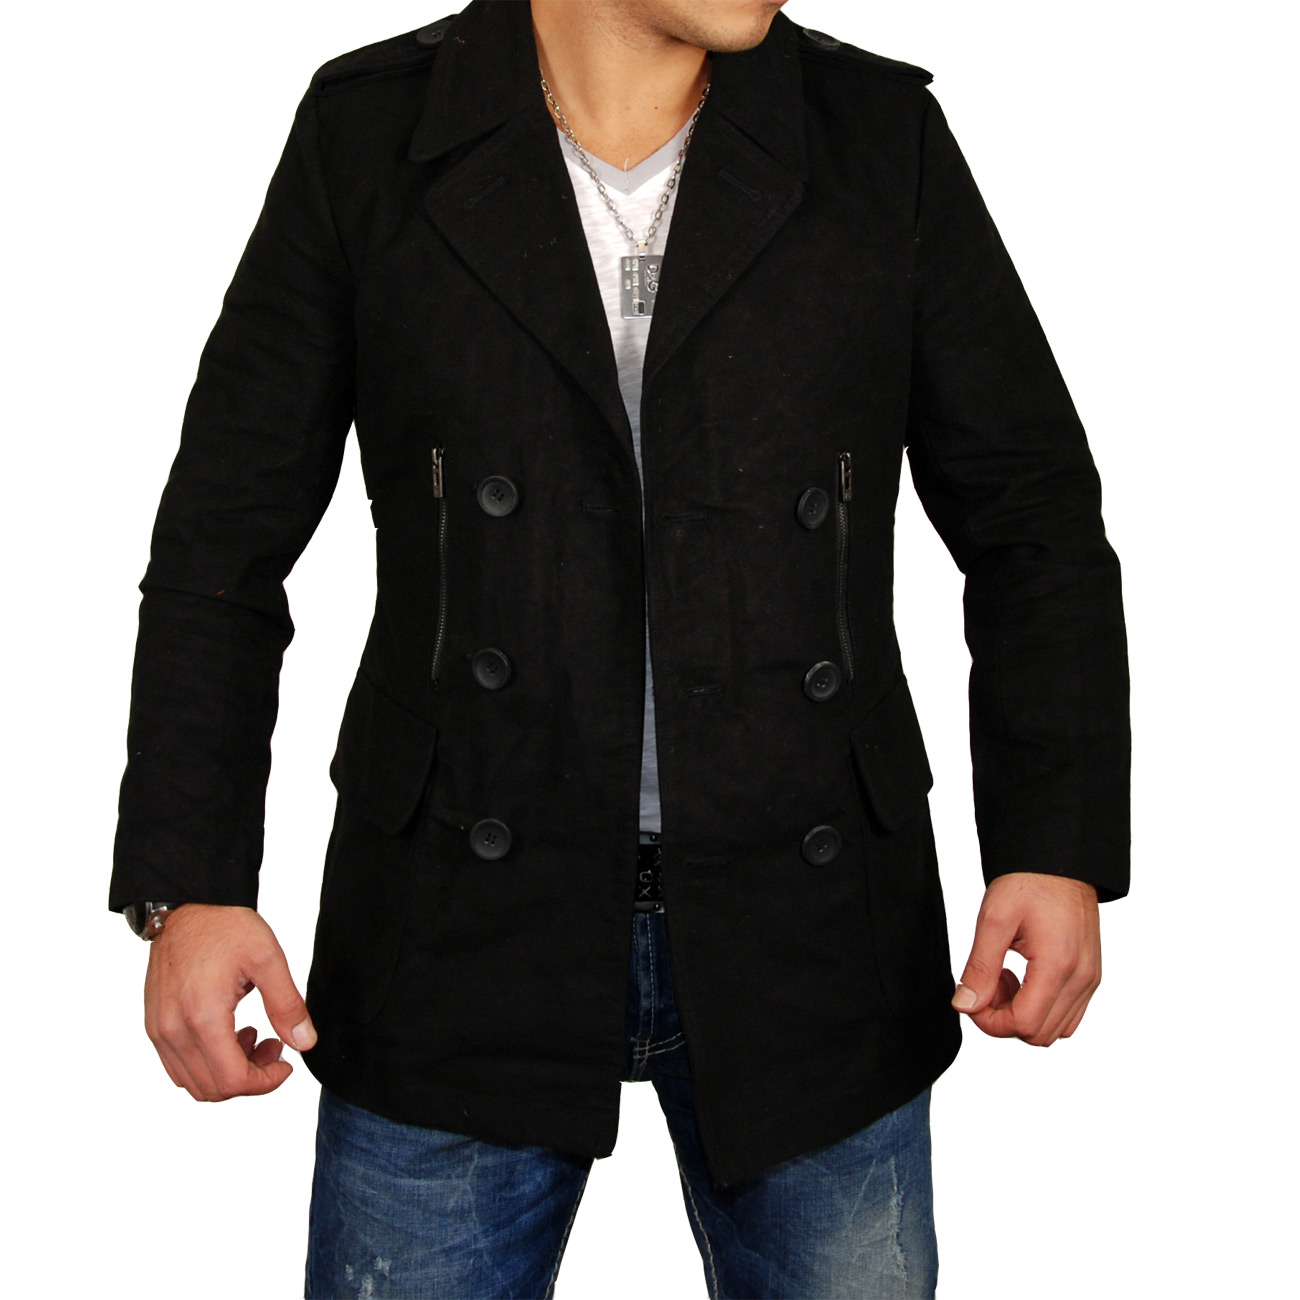 free side herren mantel jacke trenchcoat parker fs 3005 schwarz ebay. Black Bedroom Furniture Sets. Home Design Ideas